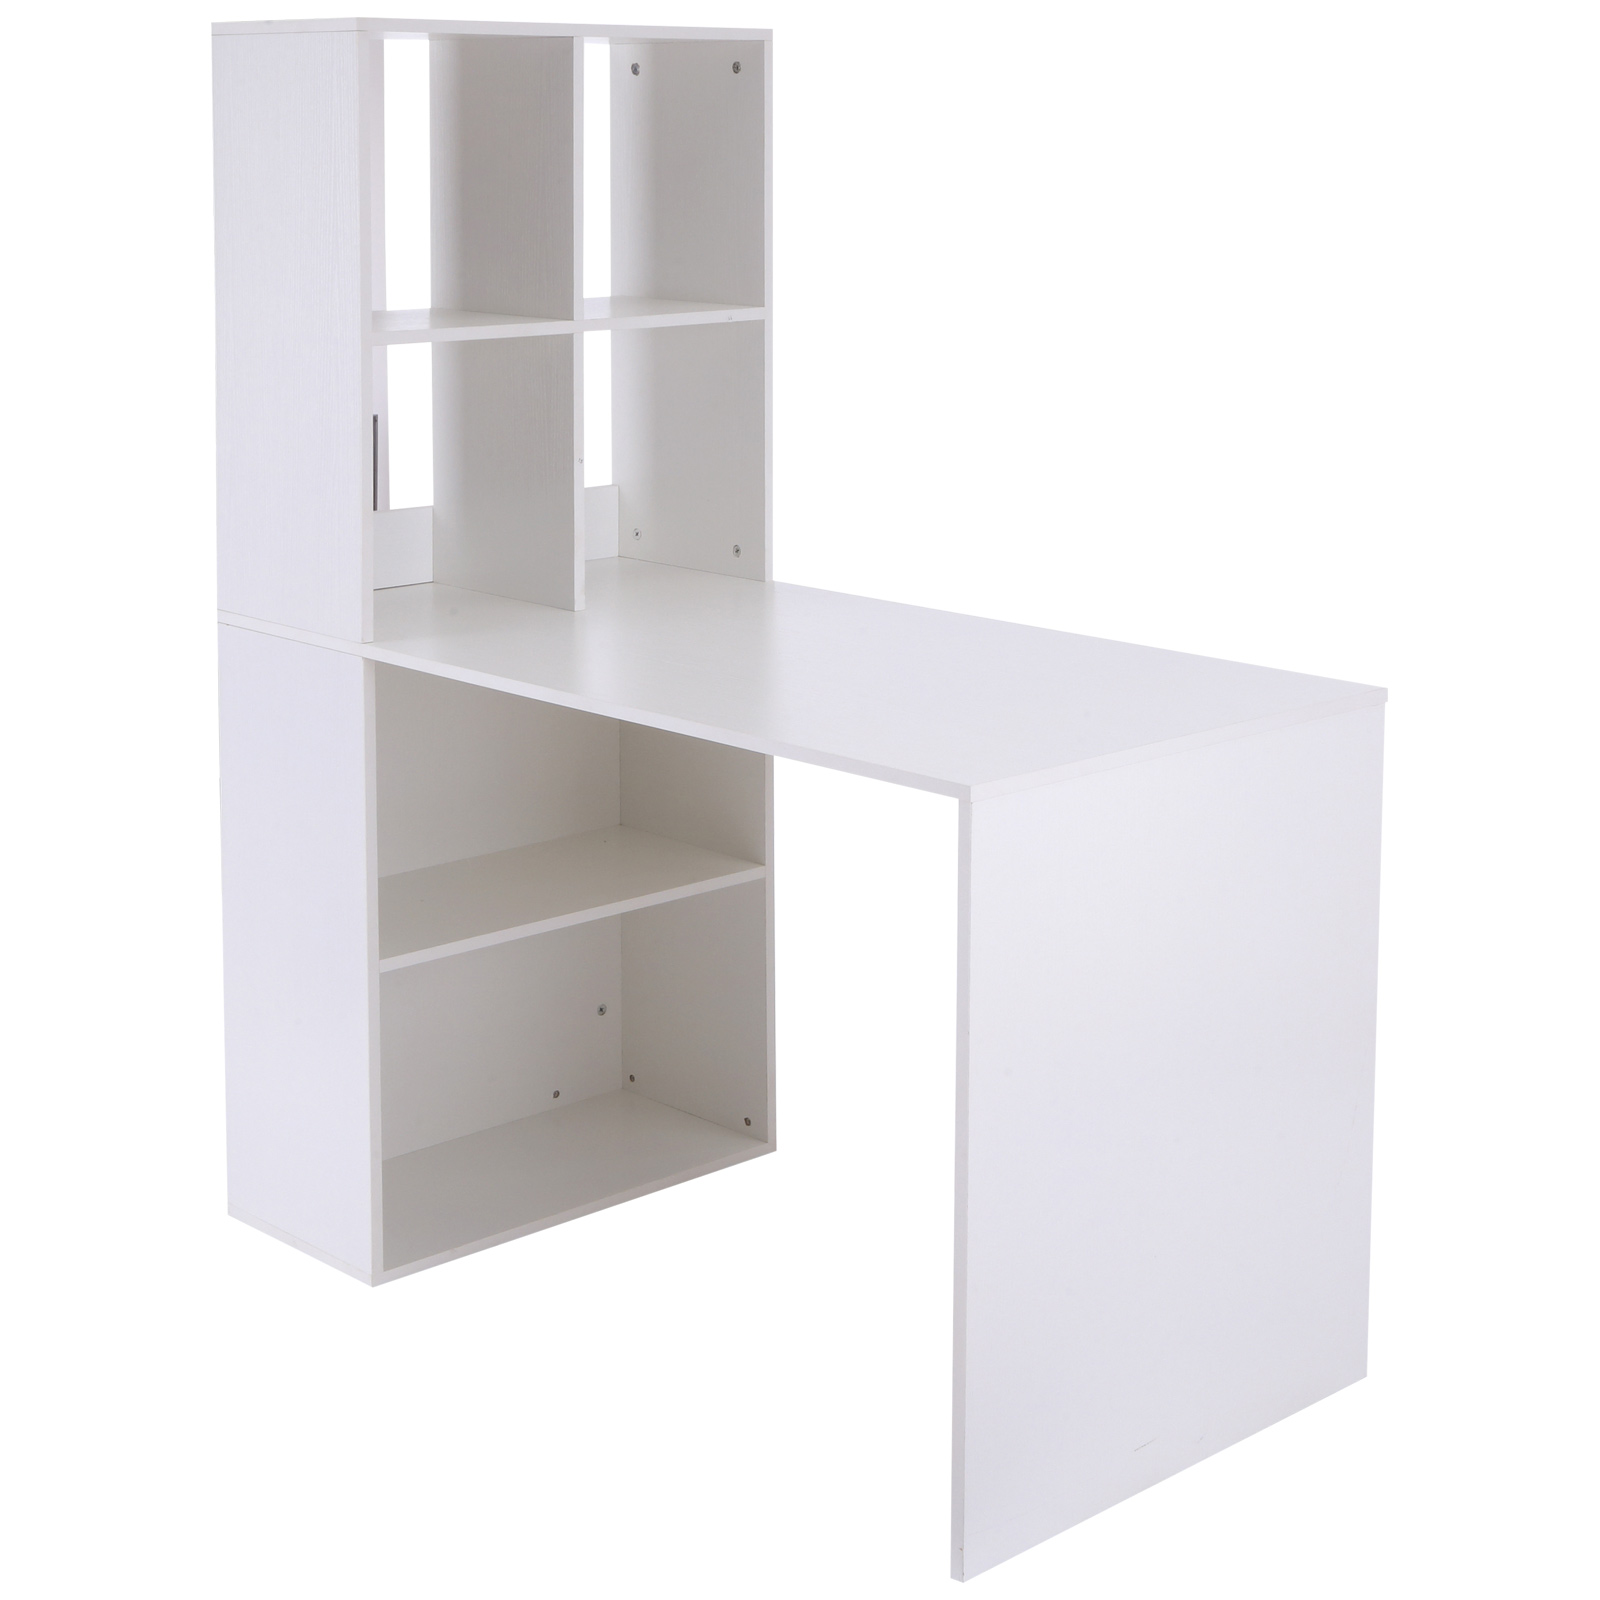 Image of CAD $169.99 Vinsetto Computer Desk Space Saving White / Writing Workstation with Storage Shelf PC Laptop and Display Design Write Canada 95509793430